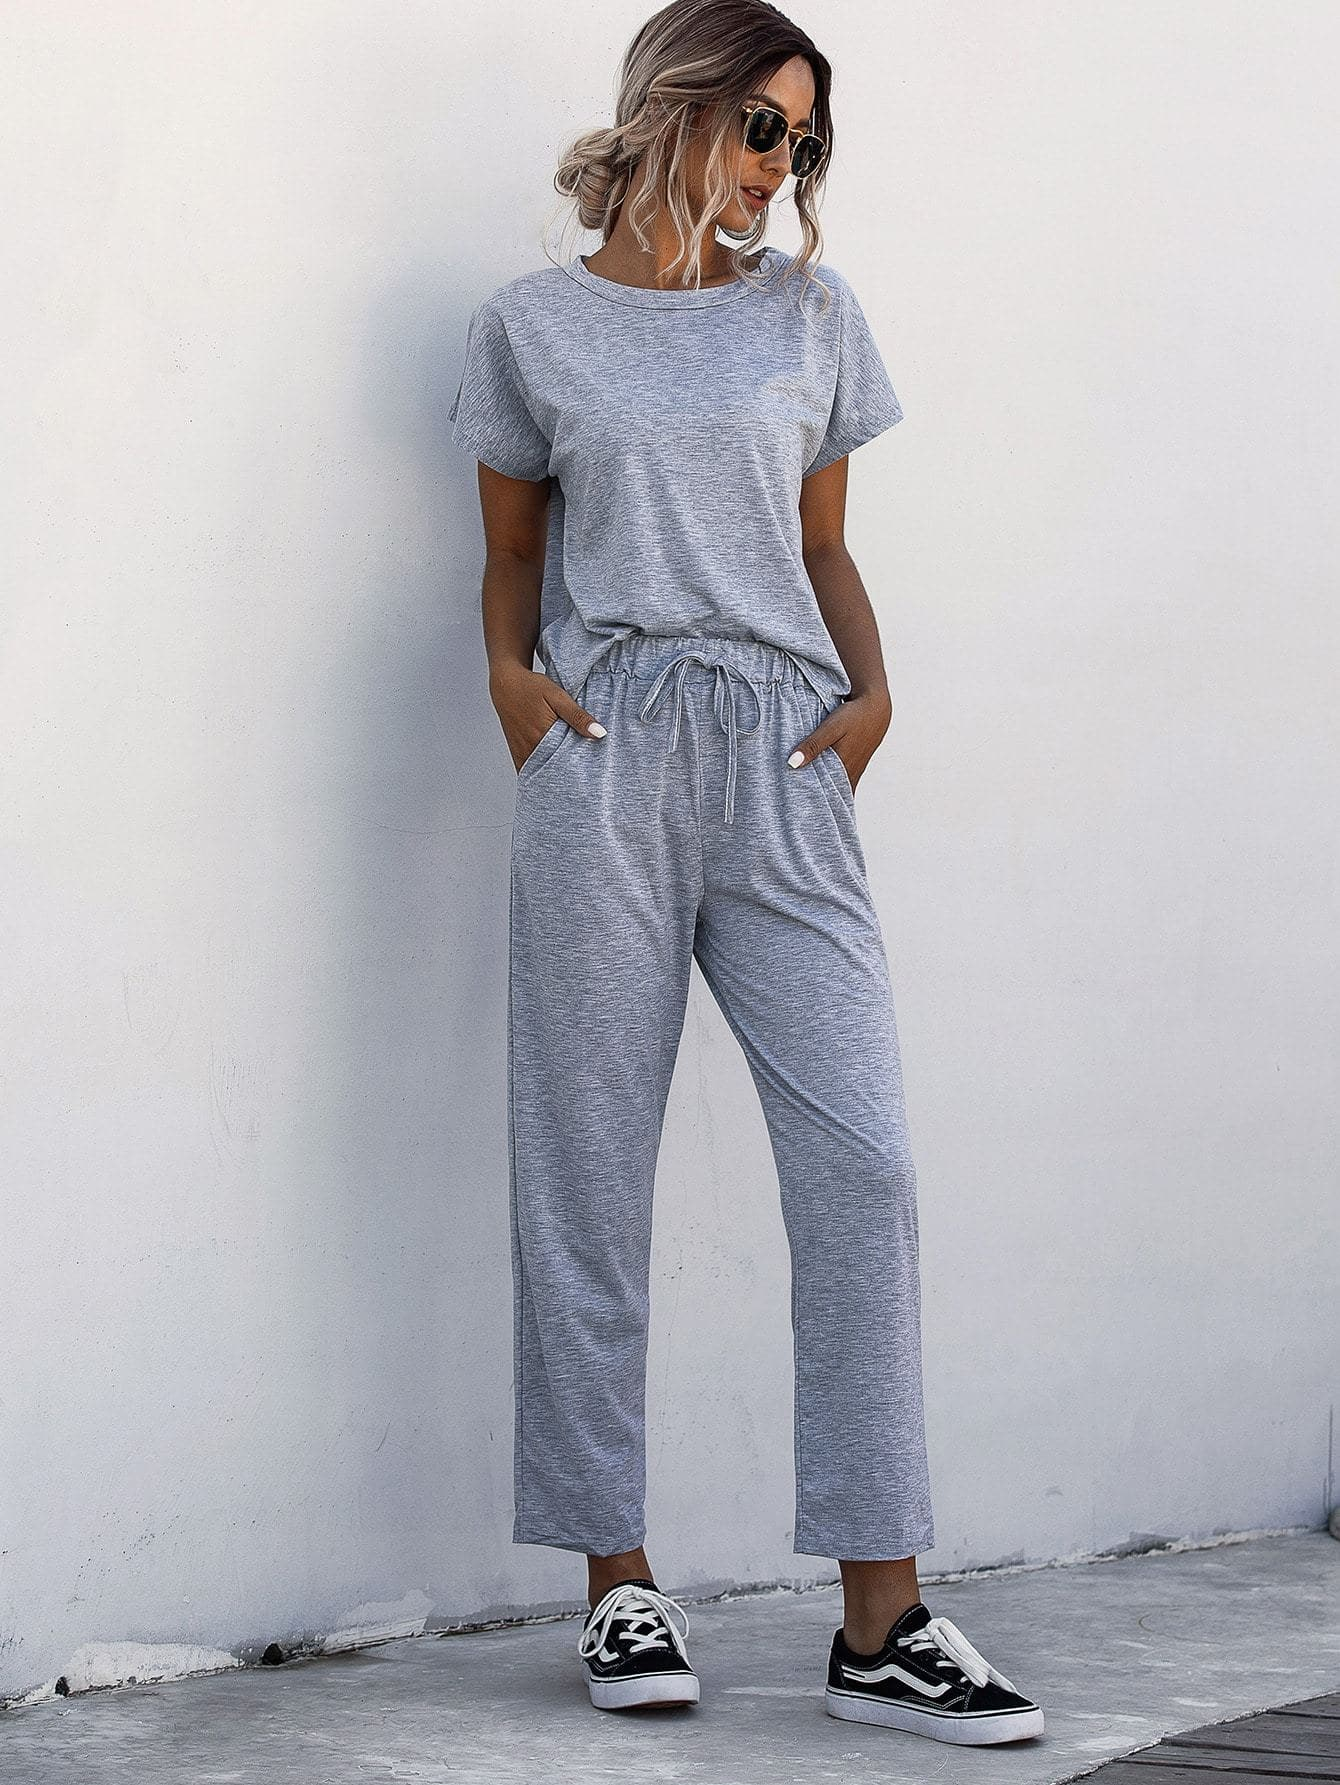 Space Dye Tee With Drawstring Waist Pants - FLJ CORPORATIONS